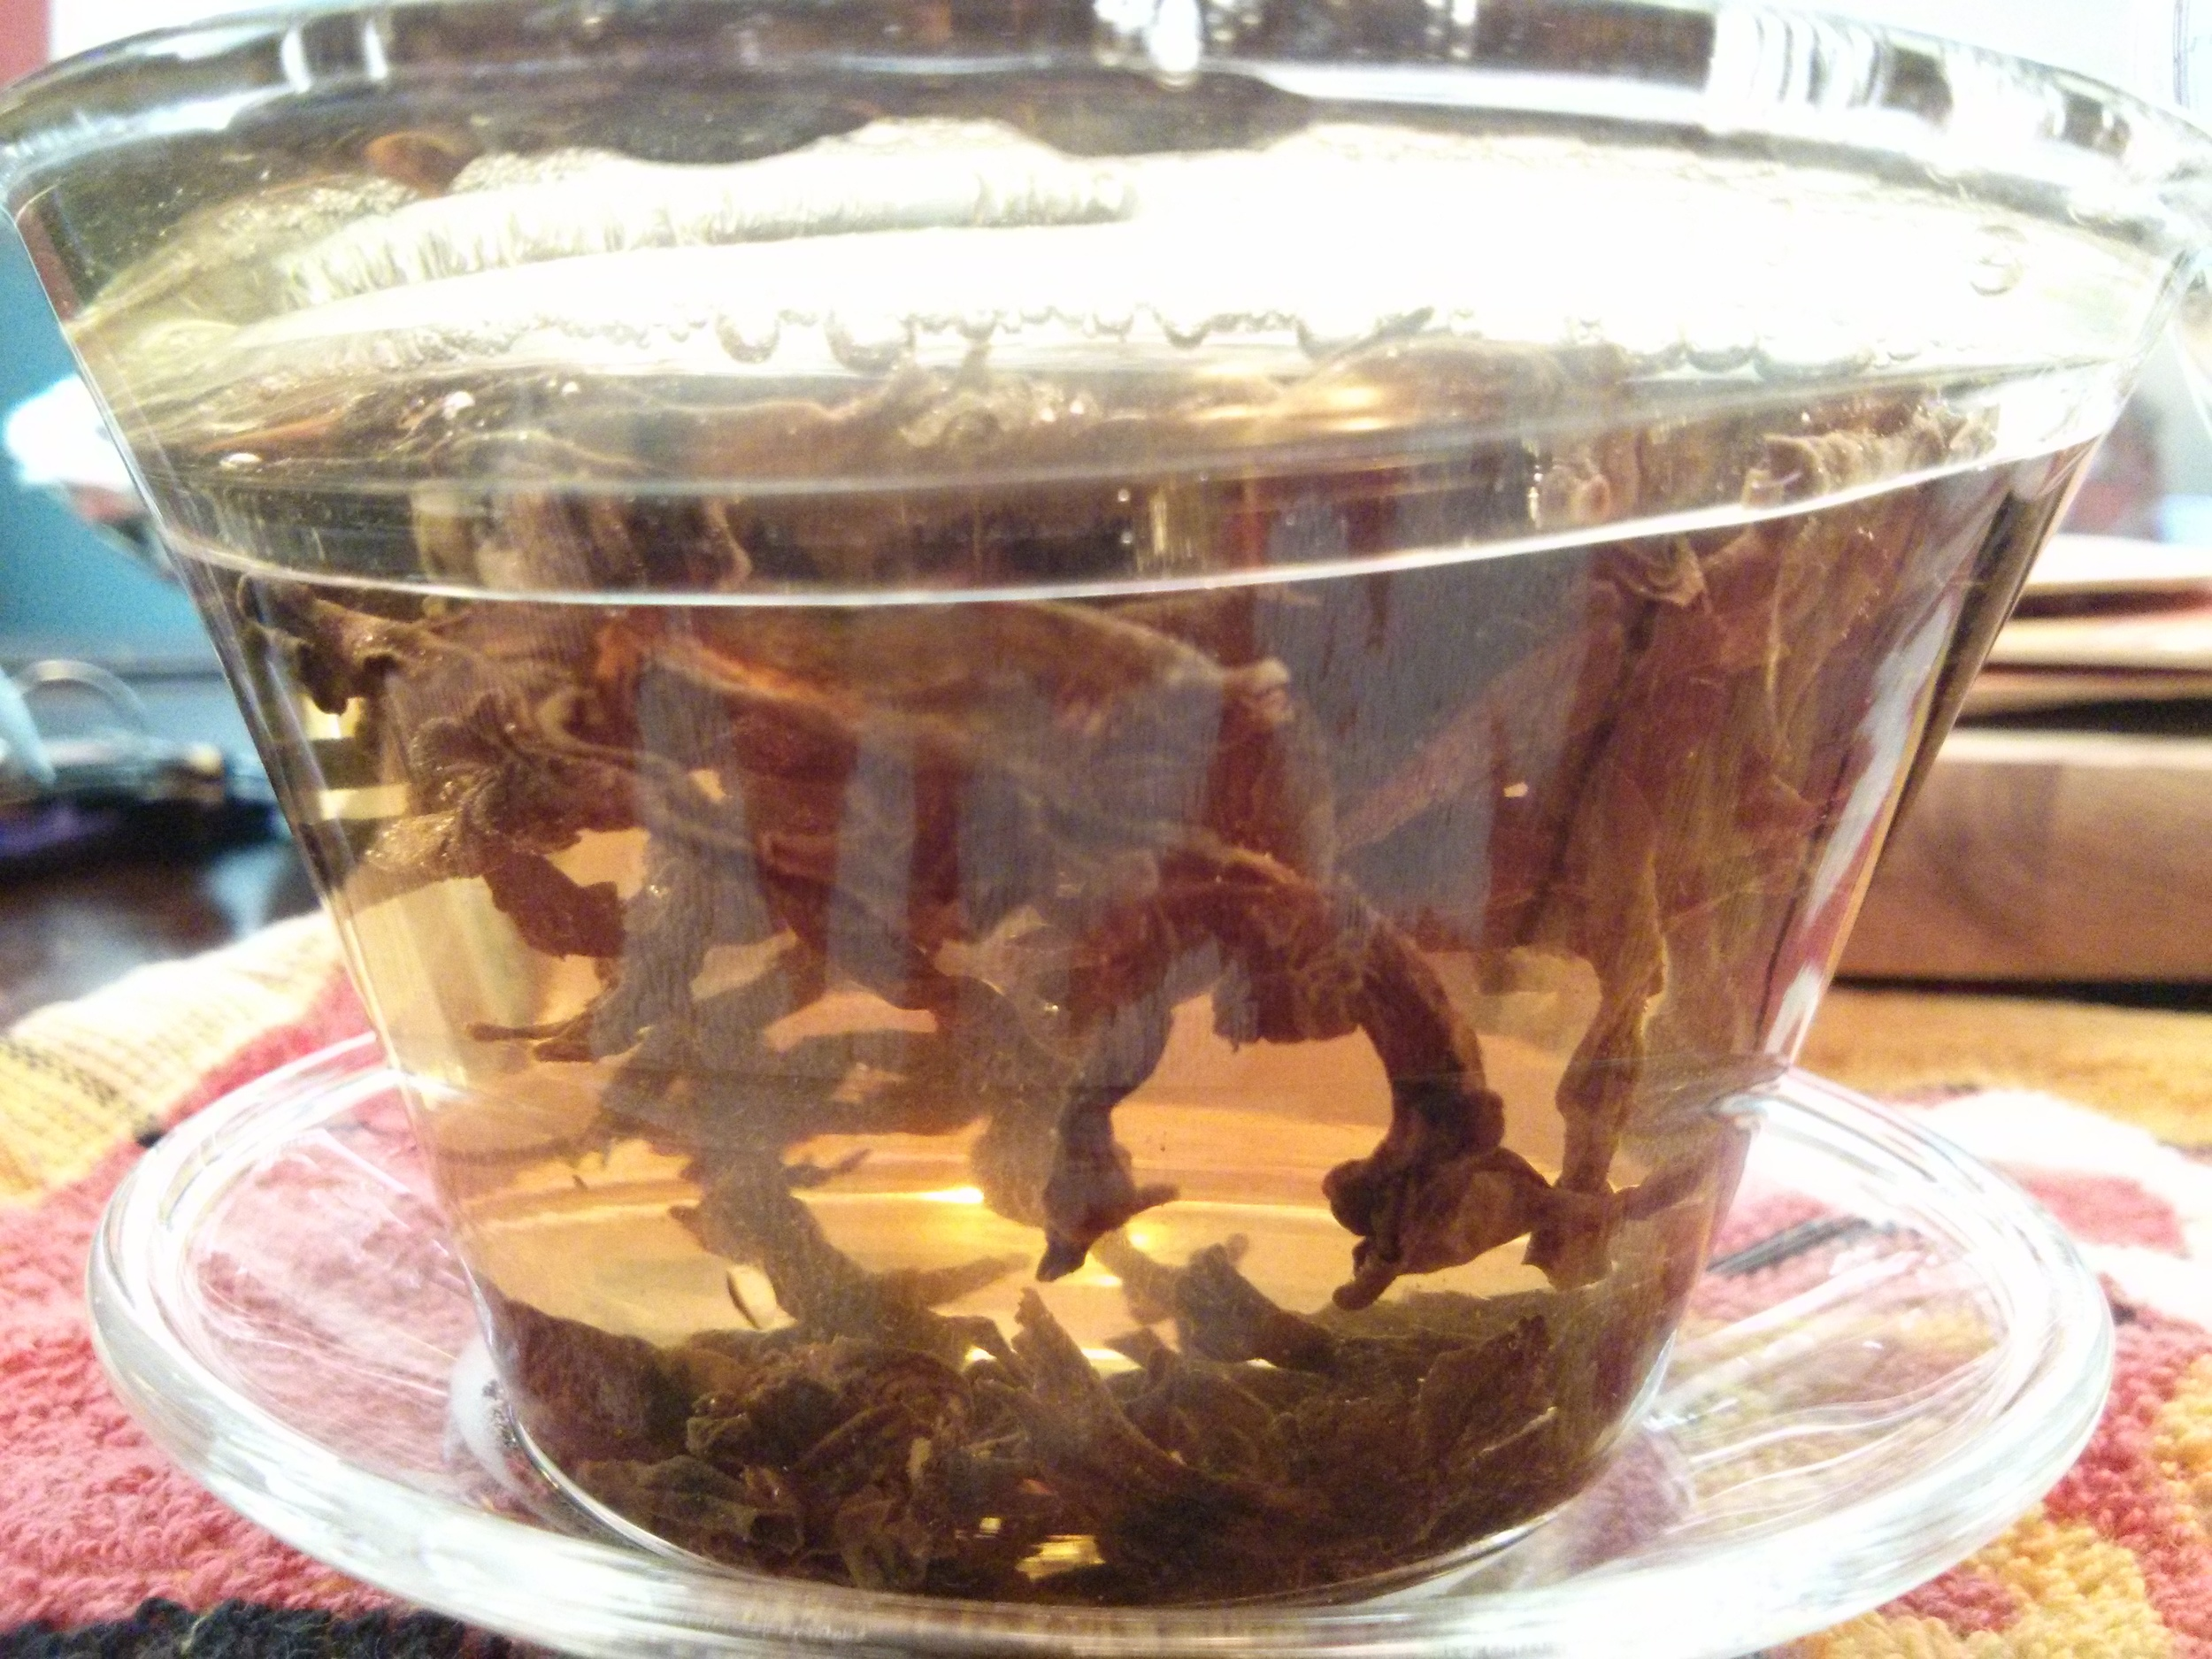 Like other Rock Oolongs, this tea is roasted, though not as thoroughly as the Tie Luo Han, allowing the smell to be sweeter.  This tea was infused for 45 seconds at 190F water several times, each cup yielding a full flavor.